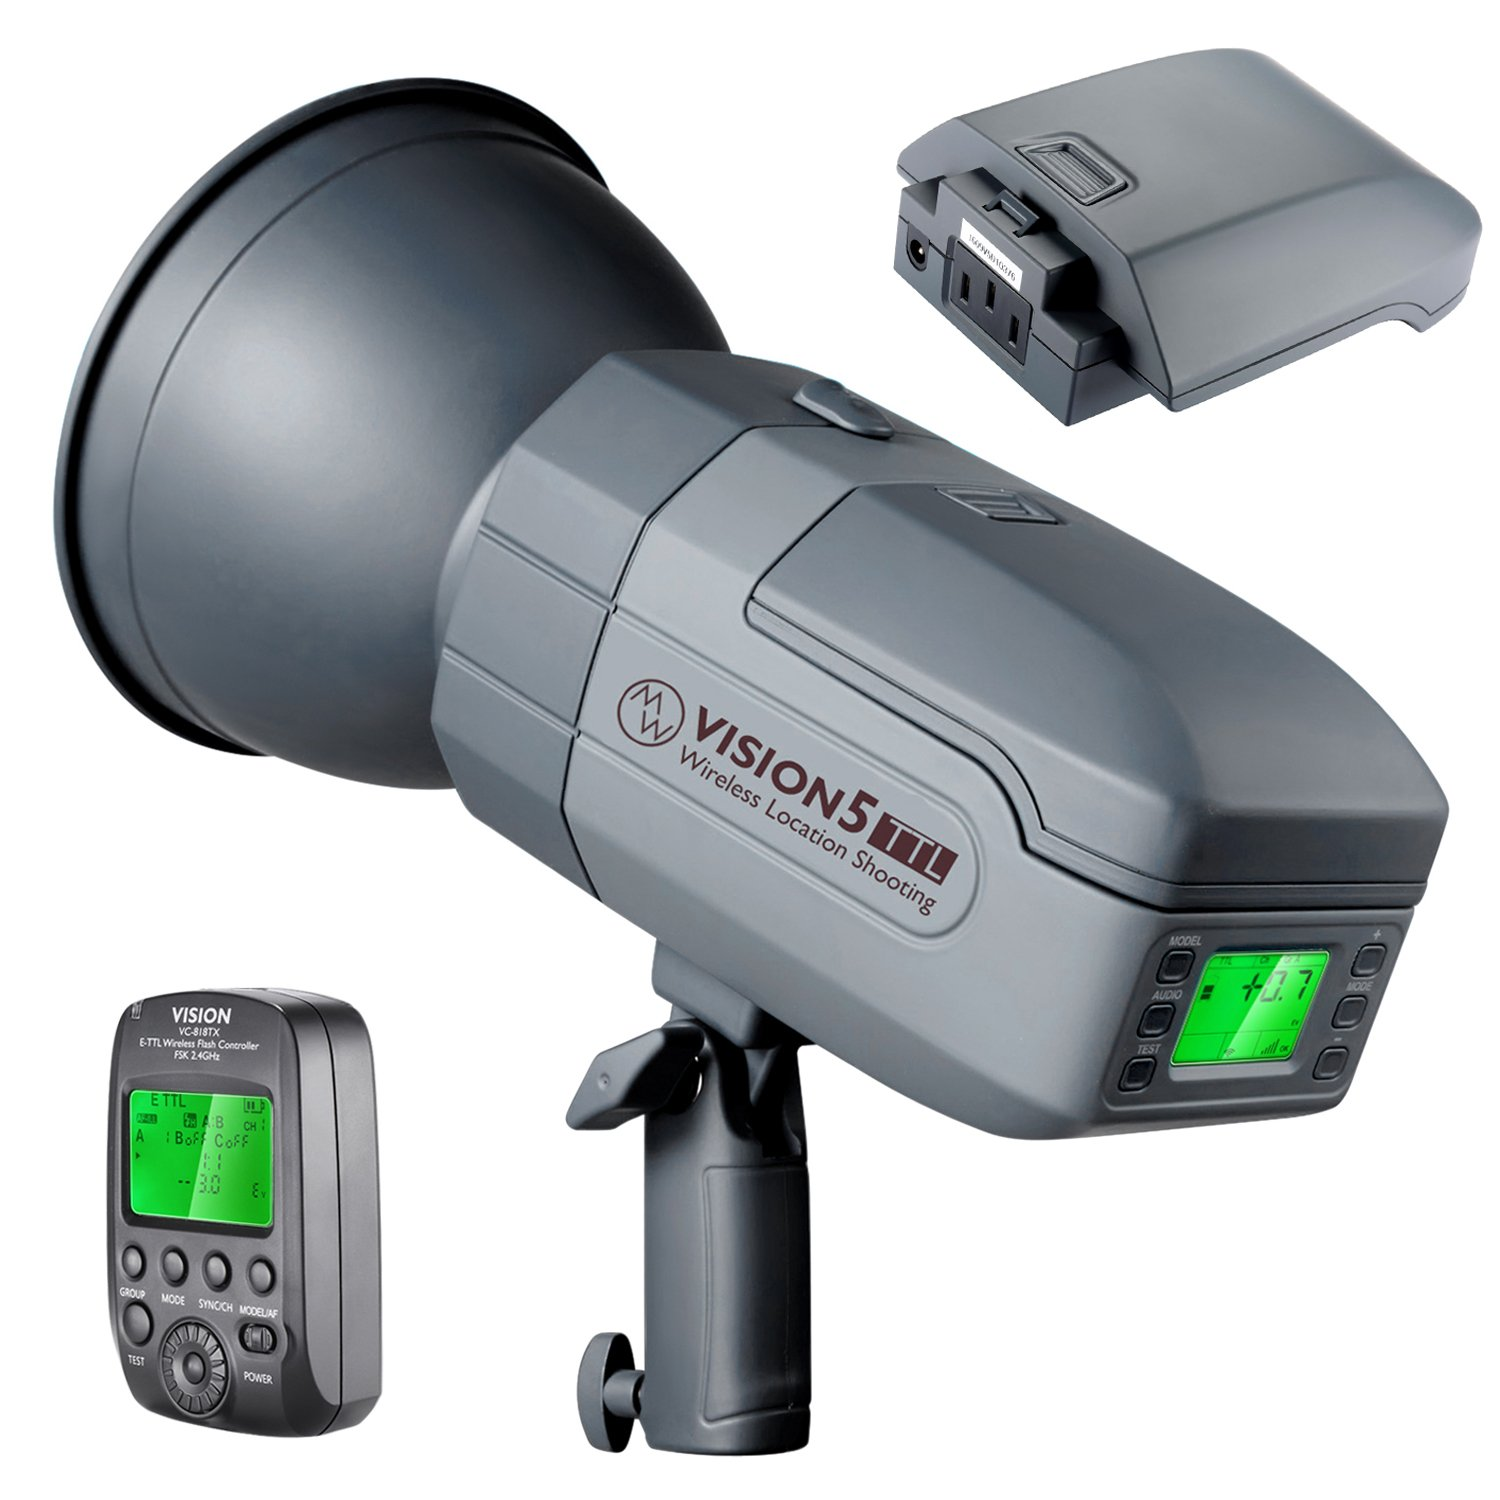 Neewer Vision5 400W TTL for NIKON HSS Outdoor Studio Flash Strobe with 2.4G System and Wireless Trigger,2 Packs Li-ion Battery(up to 500 Full Power Flashes),German Engineered,3.96 Pounds,Bowens Mount by Neewer (Image #1)